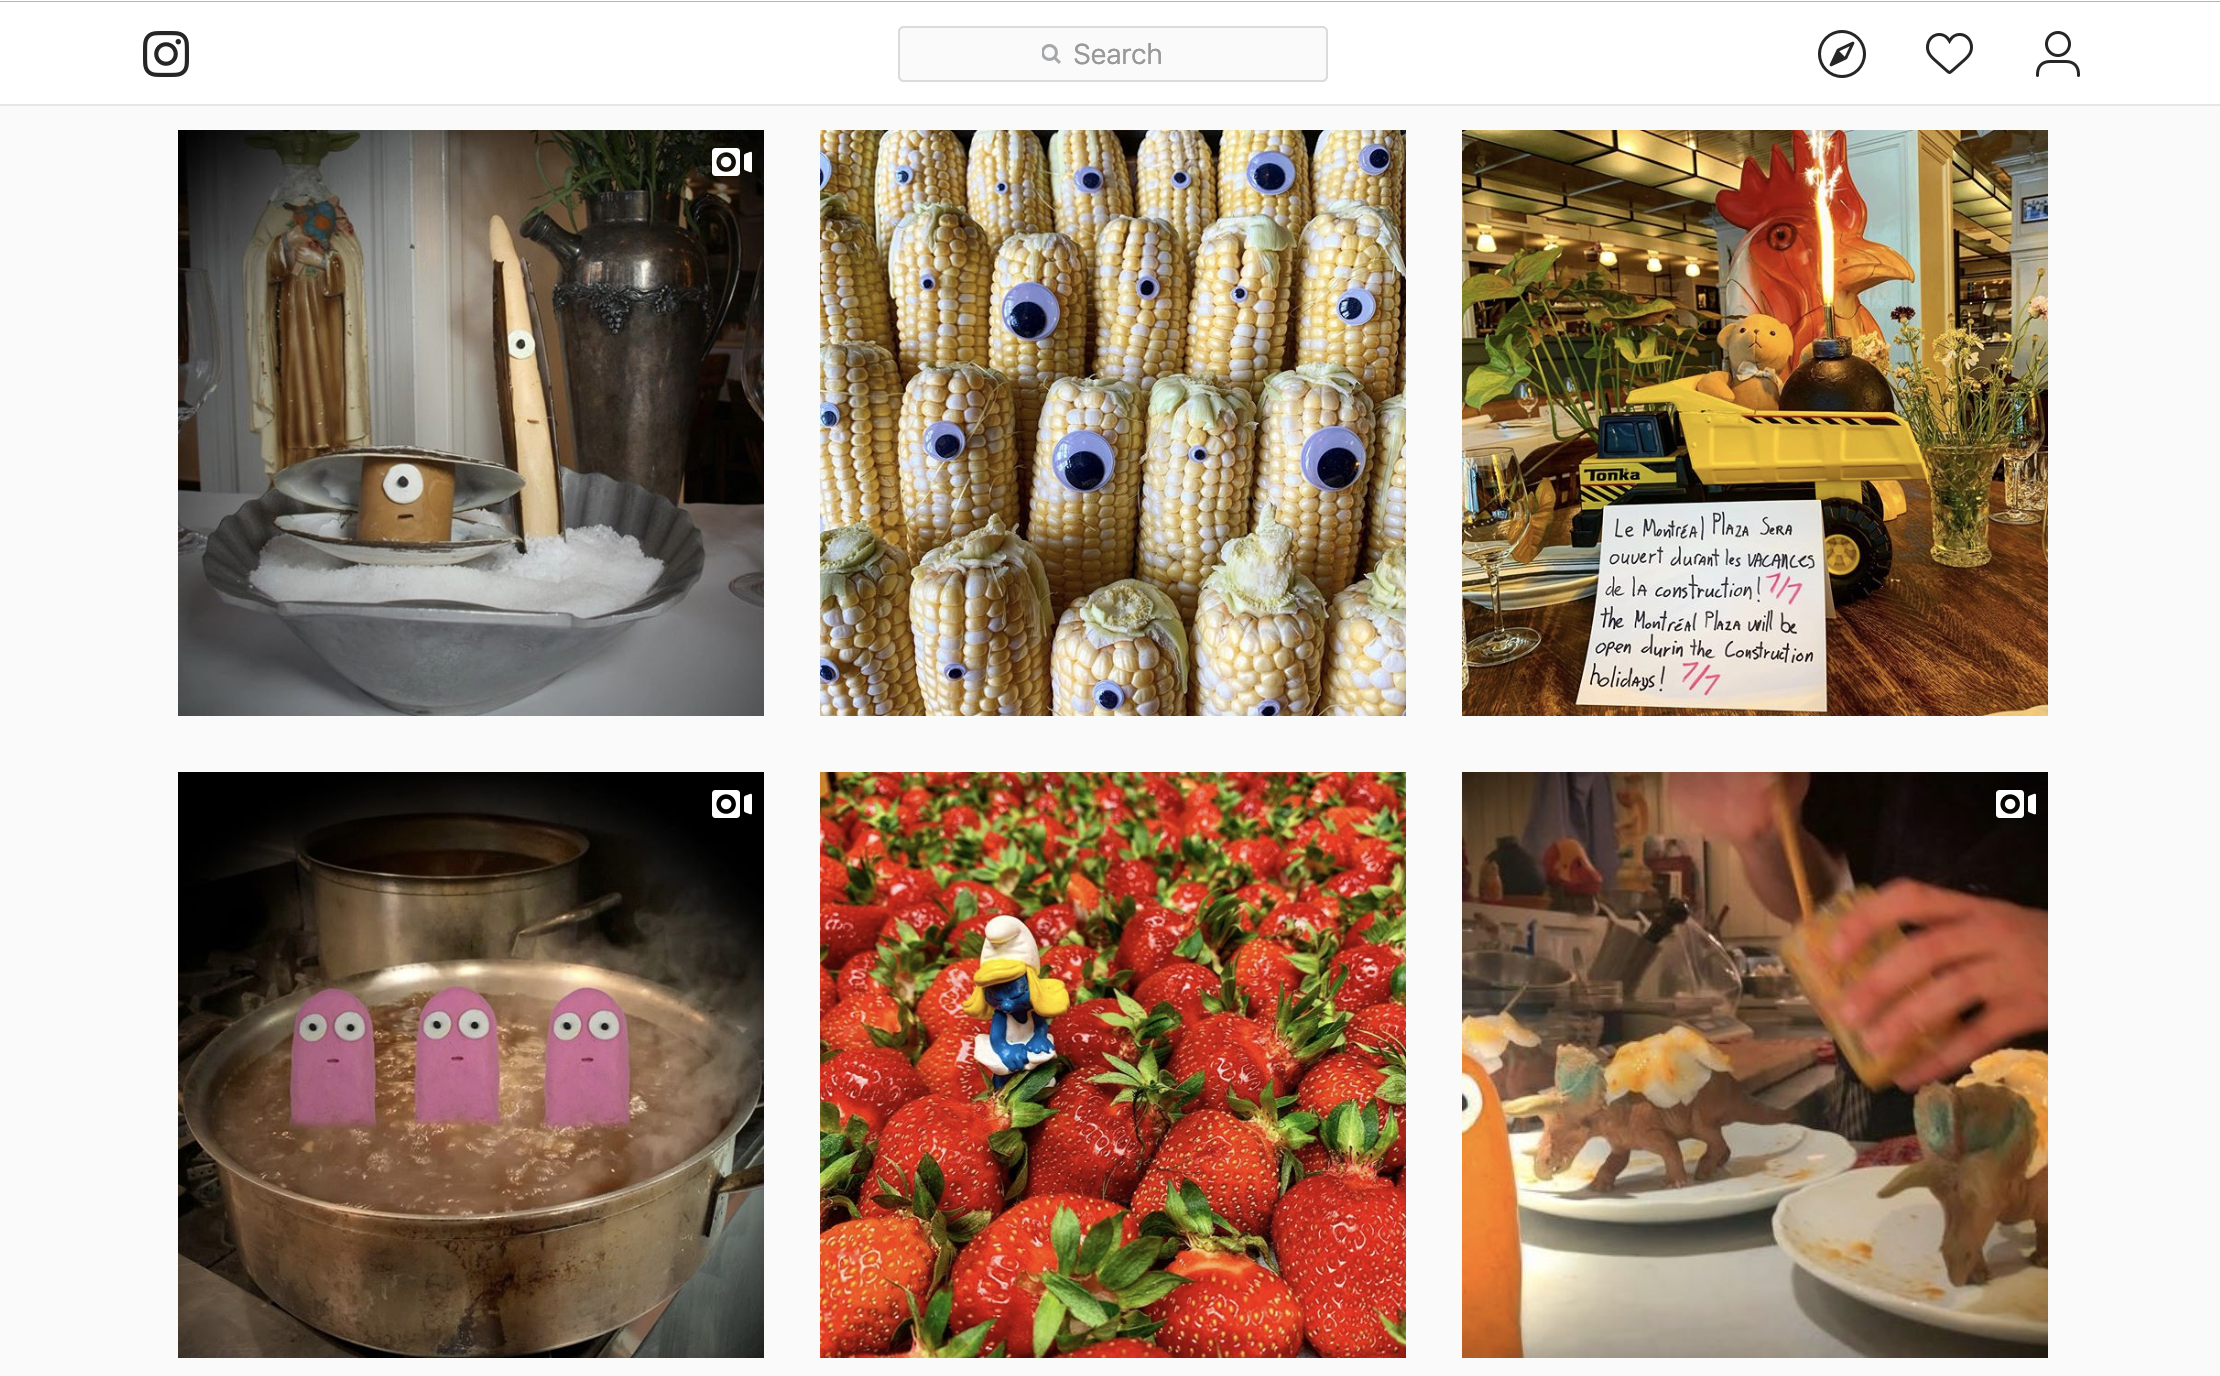 Montreal Plaza's Instagram grid includes a photo of corn with googly eyes, a Smurfette figurine in a pile of strawberries, a teddy bear in the bed of a Tonka truck, plastic dinosaurs on dinner plates, pink claymation figures in a pot of boiling water, and